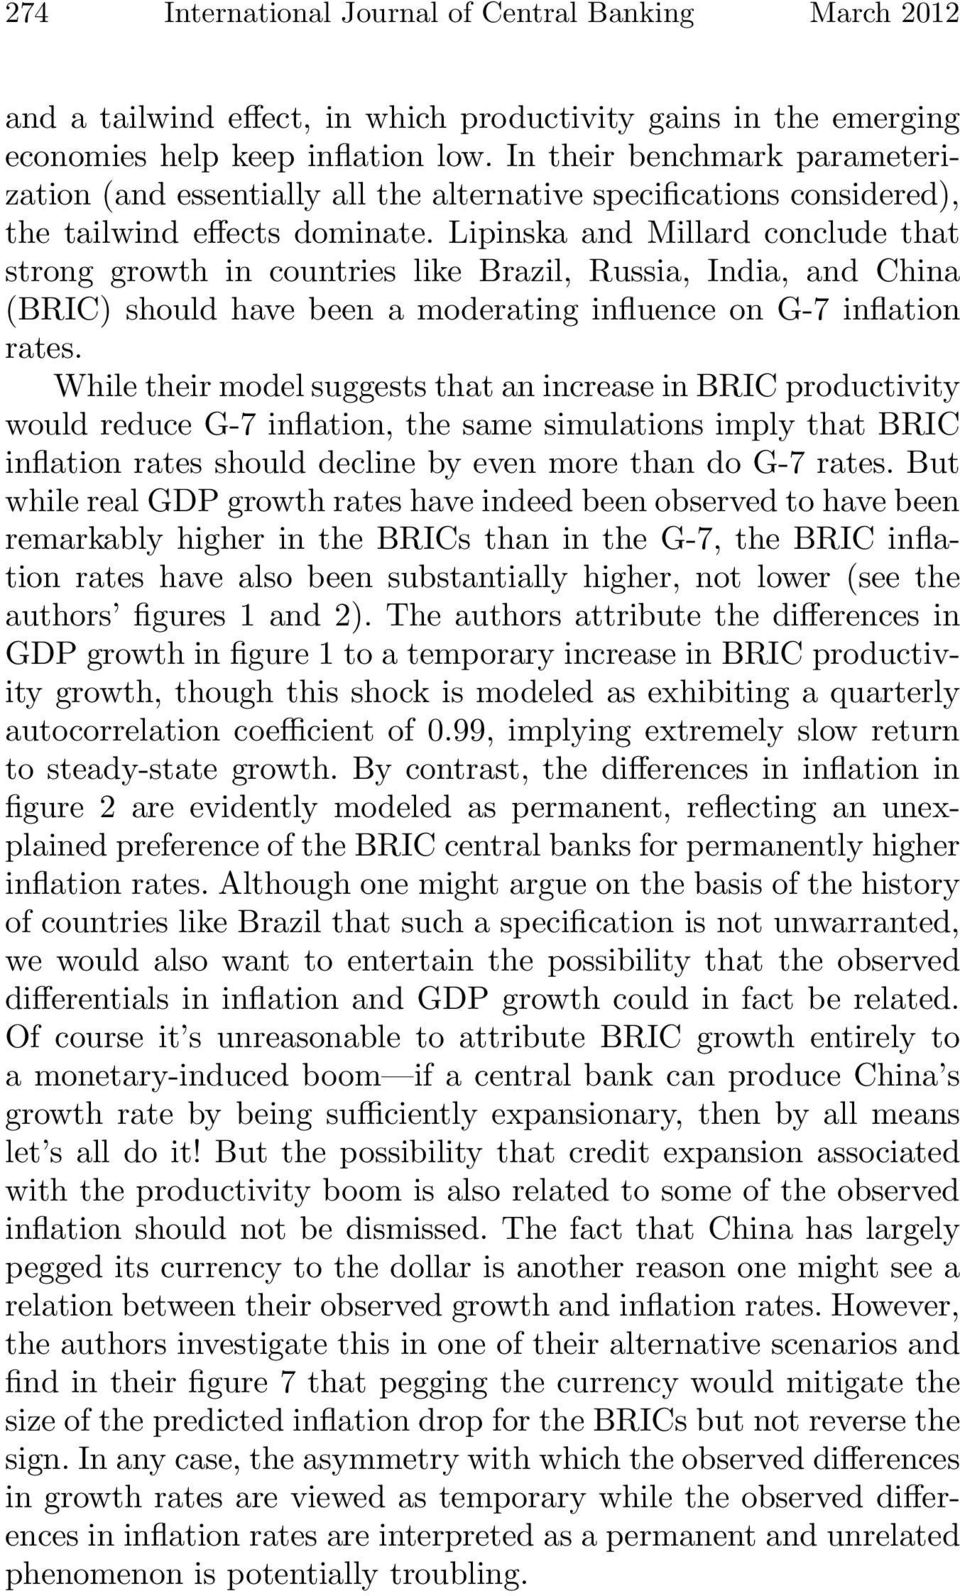 Lipinska and Millard conclude that strong growth in countries like Brazil, Russia, India, and China (BRIC) should have been a moderating influence on G-7 inflation rates.